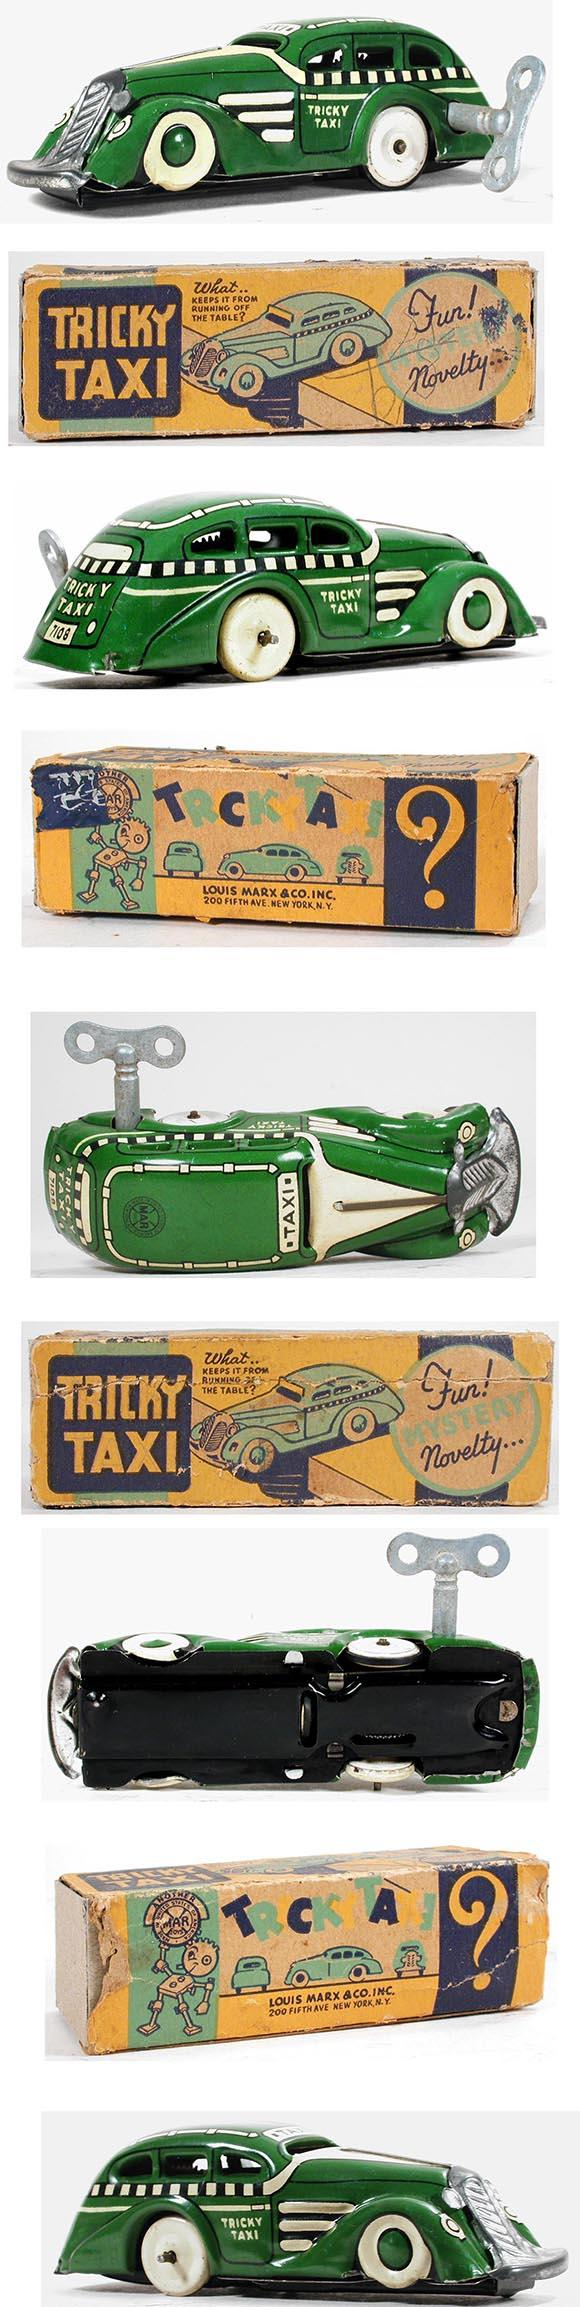 1948 Marx, Checkered Green Tricky Taxi in Original Box